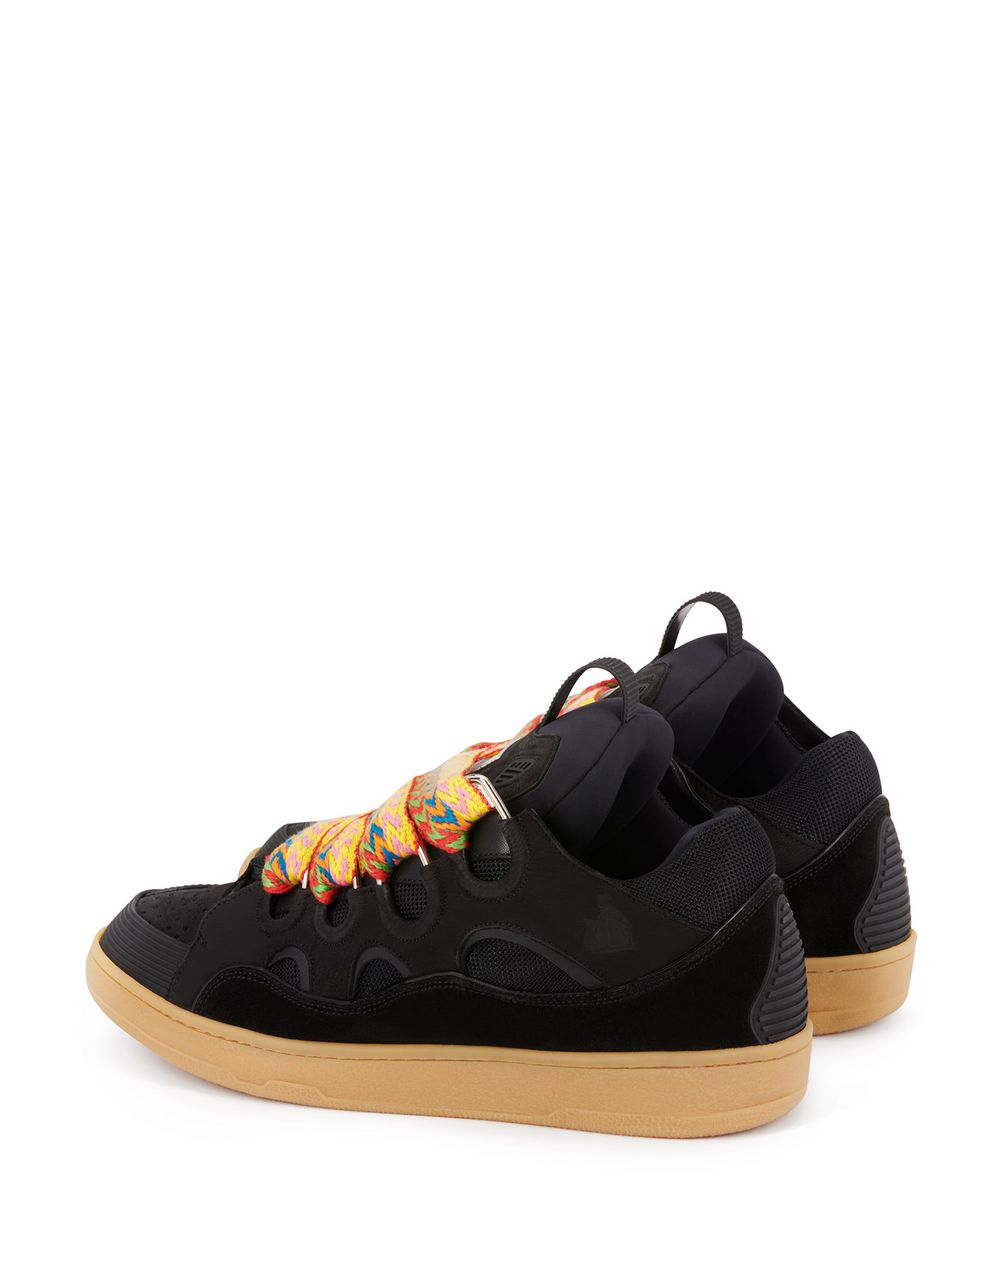 LEATHER CURB SNEAKERS - Lanvin